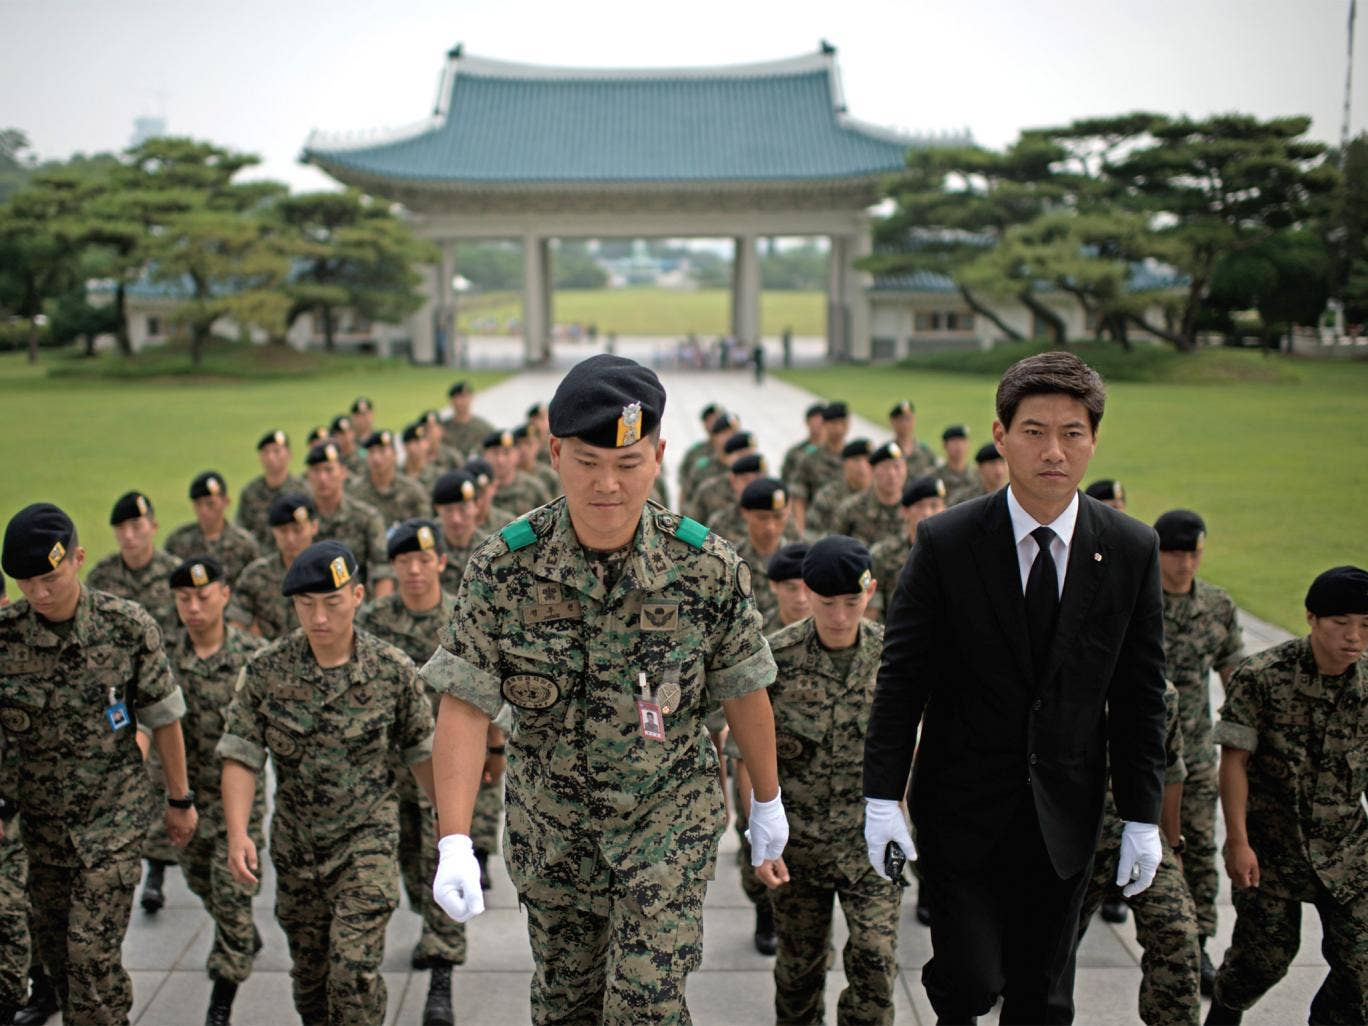 Soldiers pay their respects in June on the anniversary of the start of the Korean War. Many South Korean recruits are struggling with conscript life